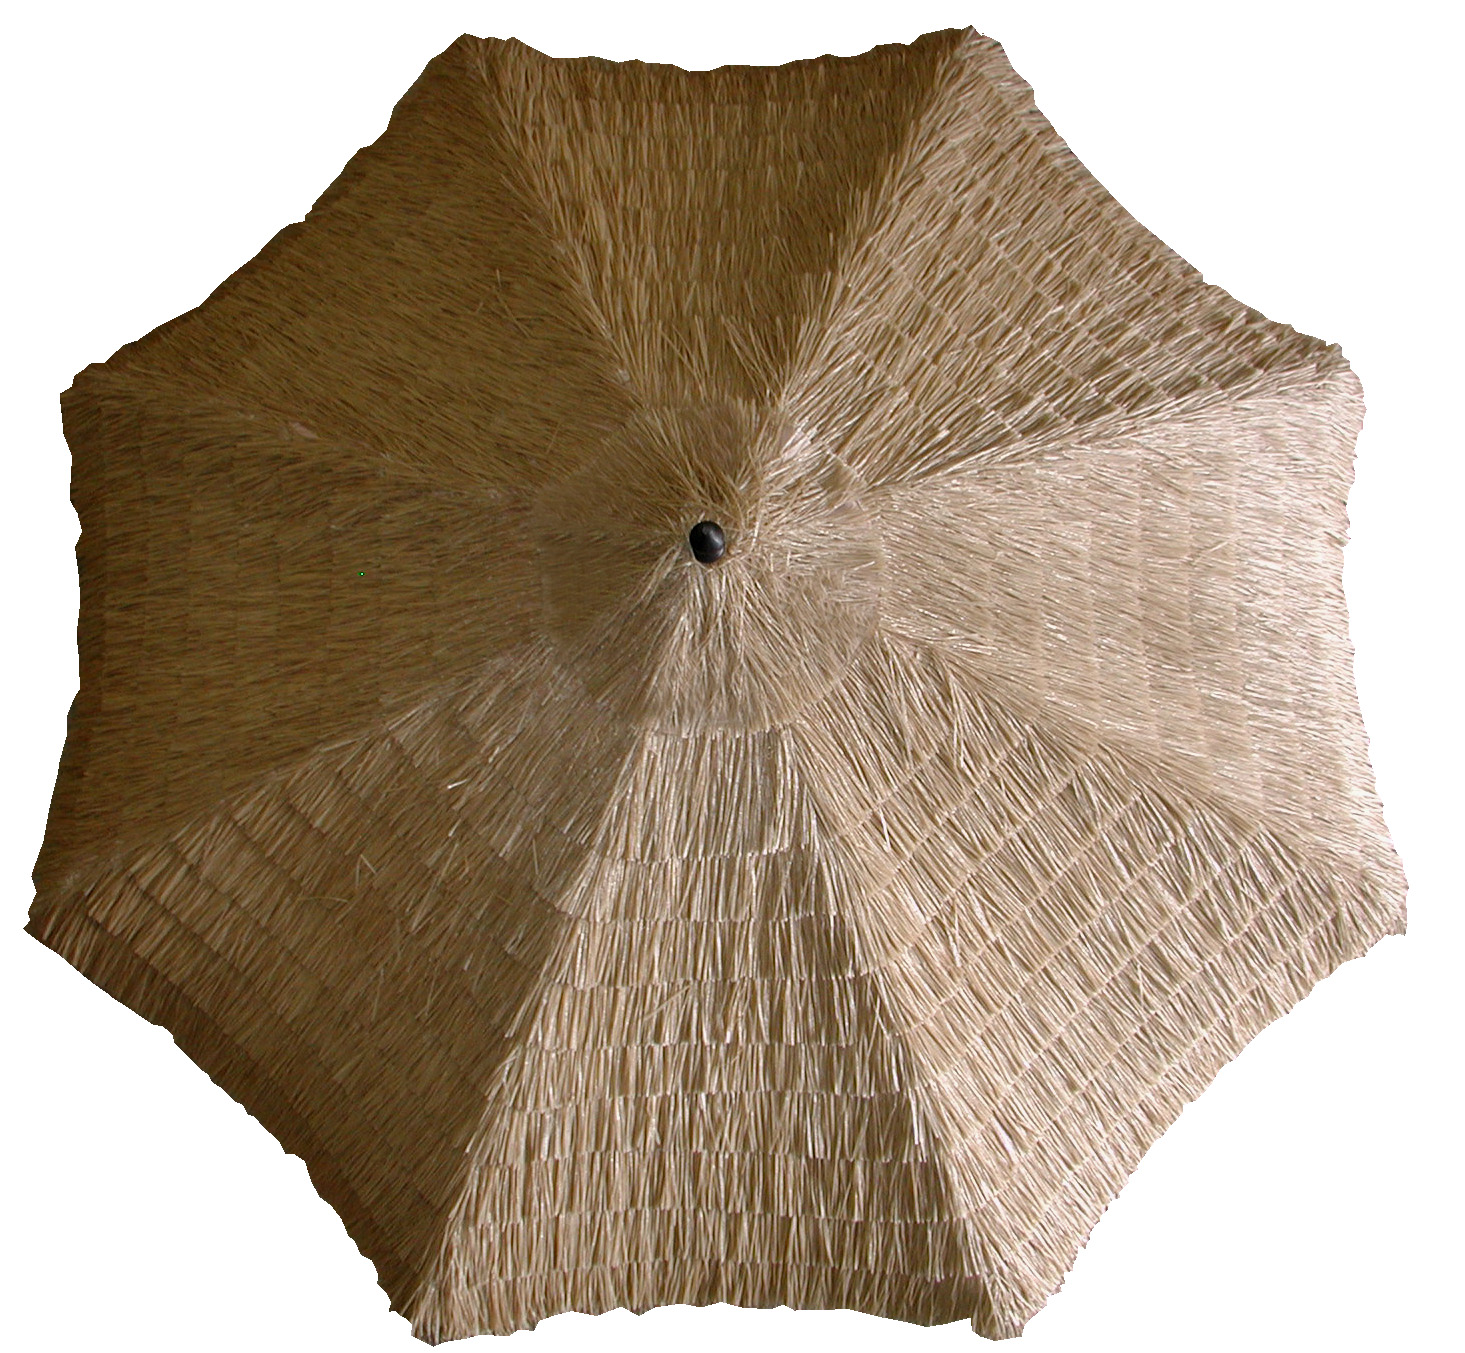 Replacement Umbrella Canopy Covers Galtech 9 Thatch